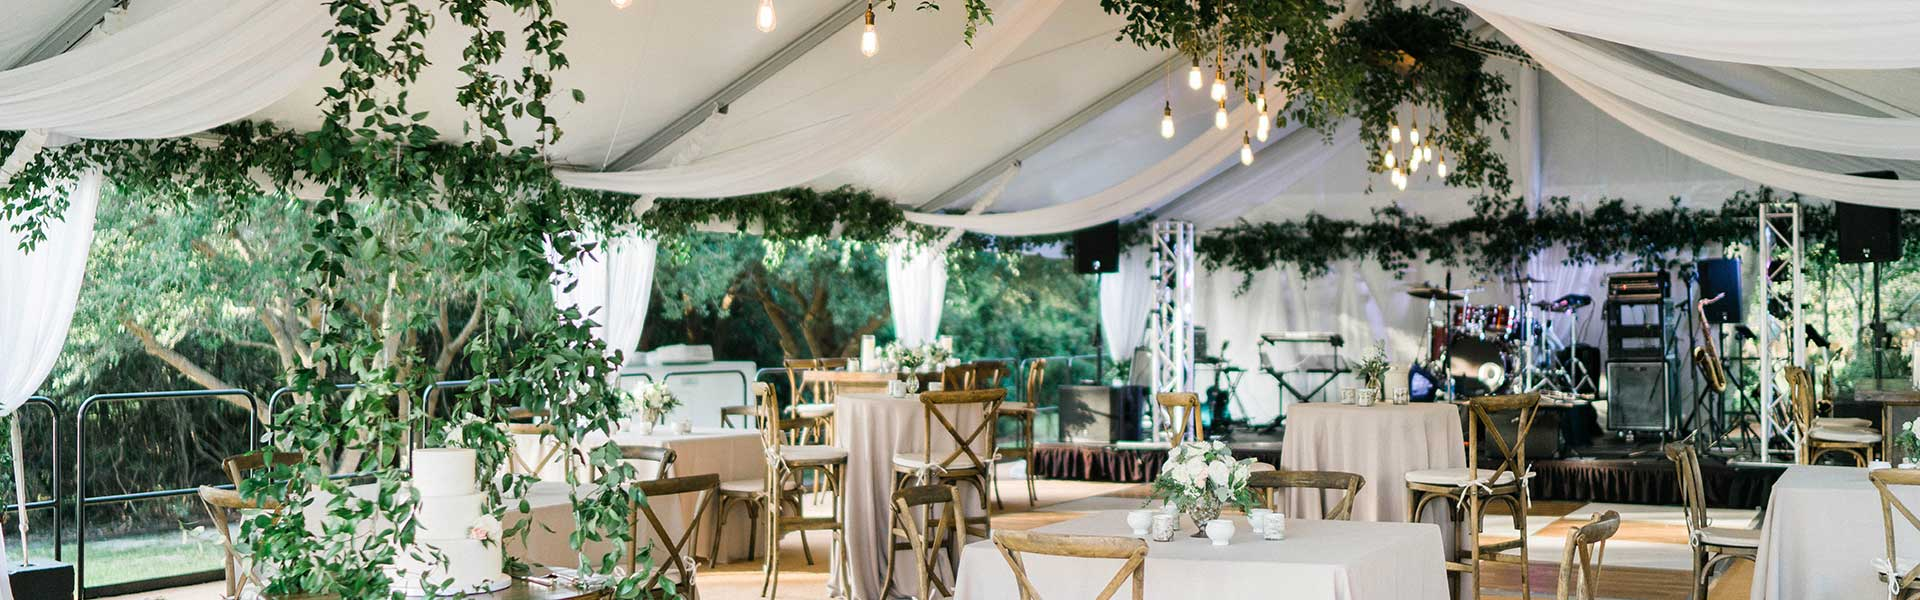 Wedding Rentals in Wilmington